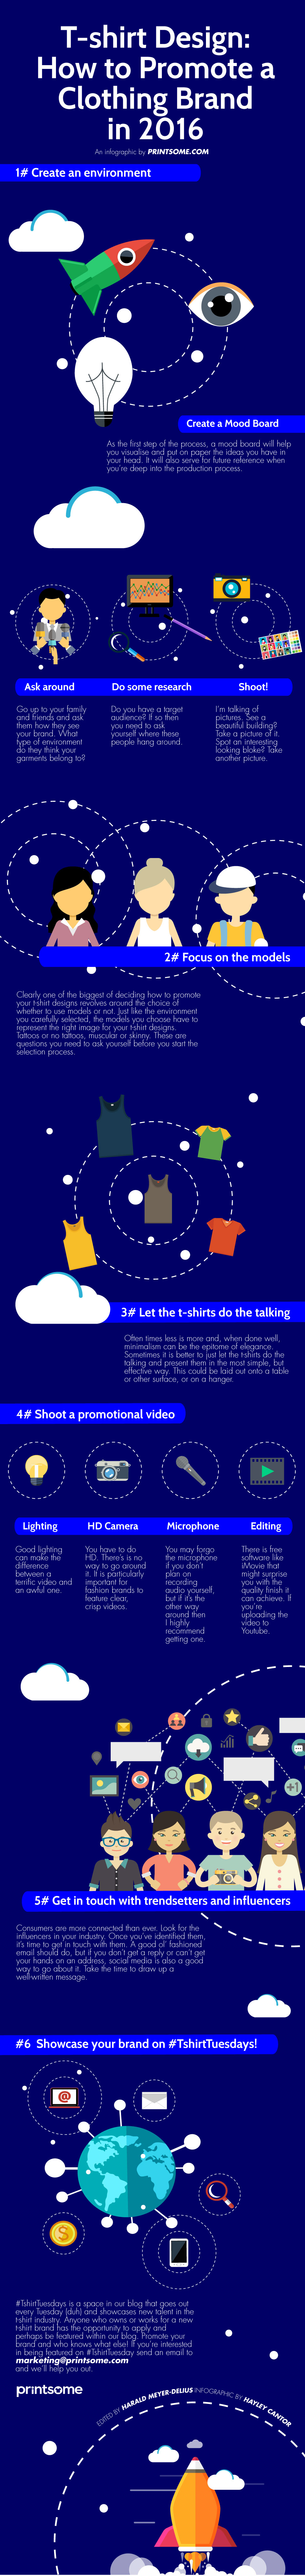 Shirt design london ontario - T Shirt Design How To Promote Your Clothing Brand